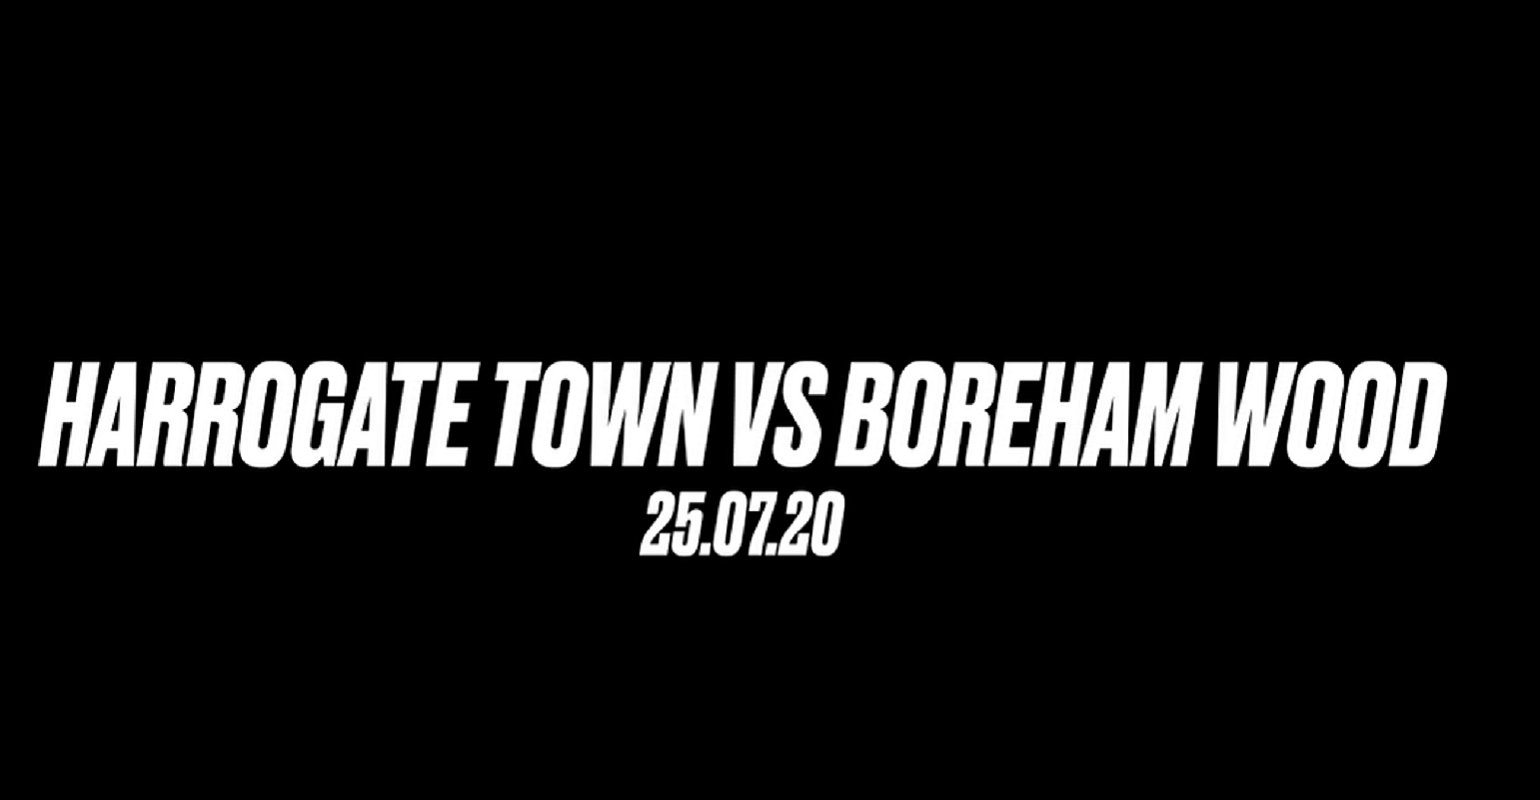 Town vs Boreham Wood - Winner Goes to Wembley